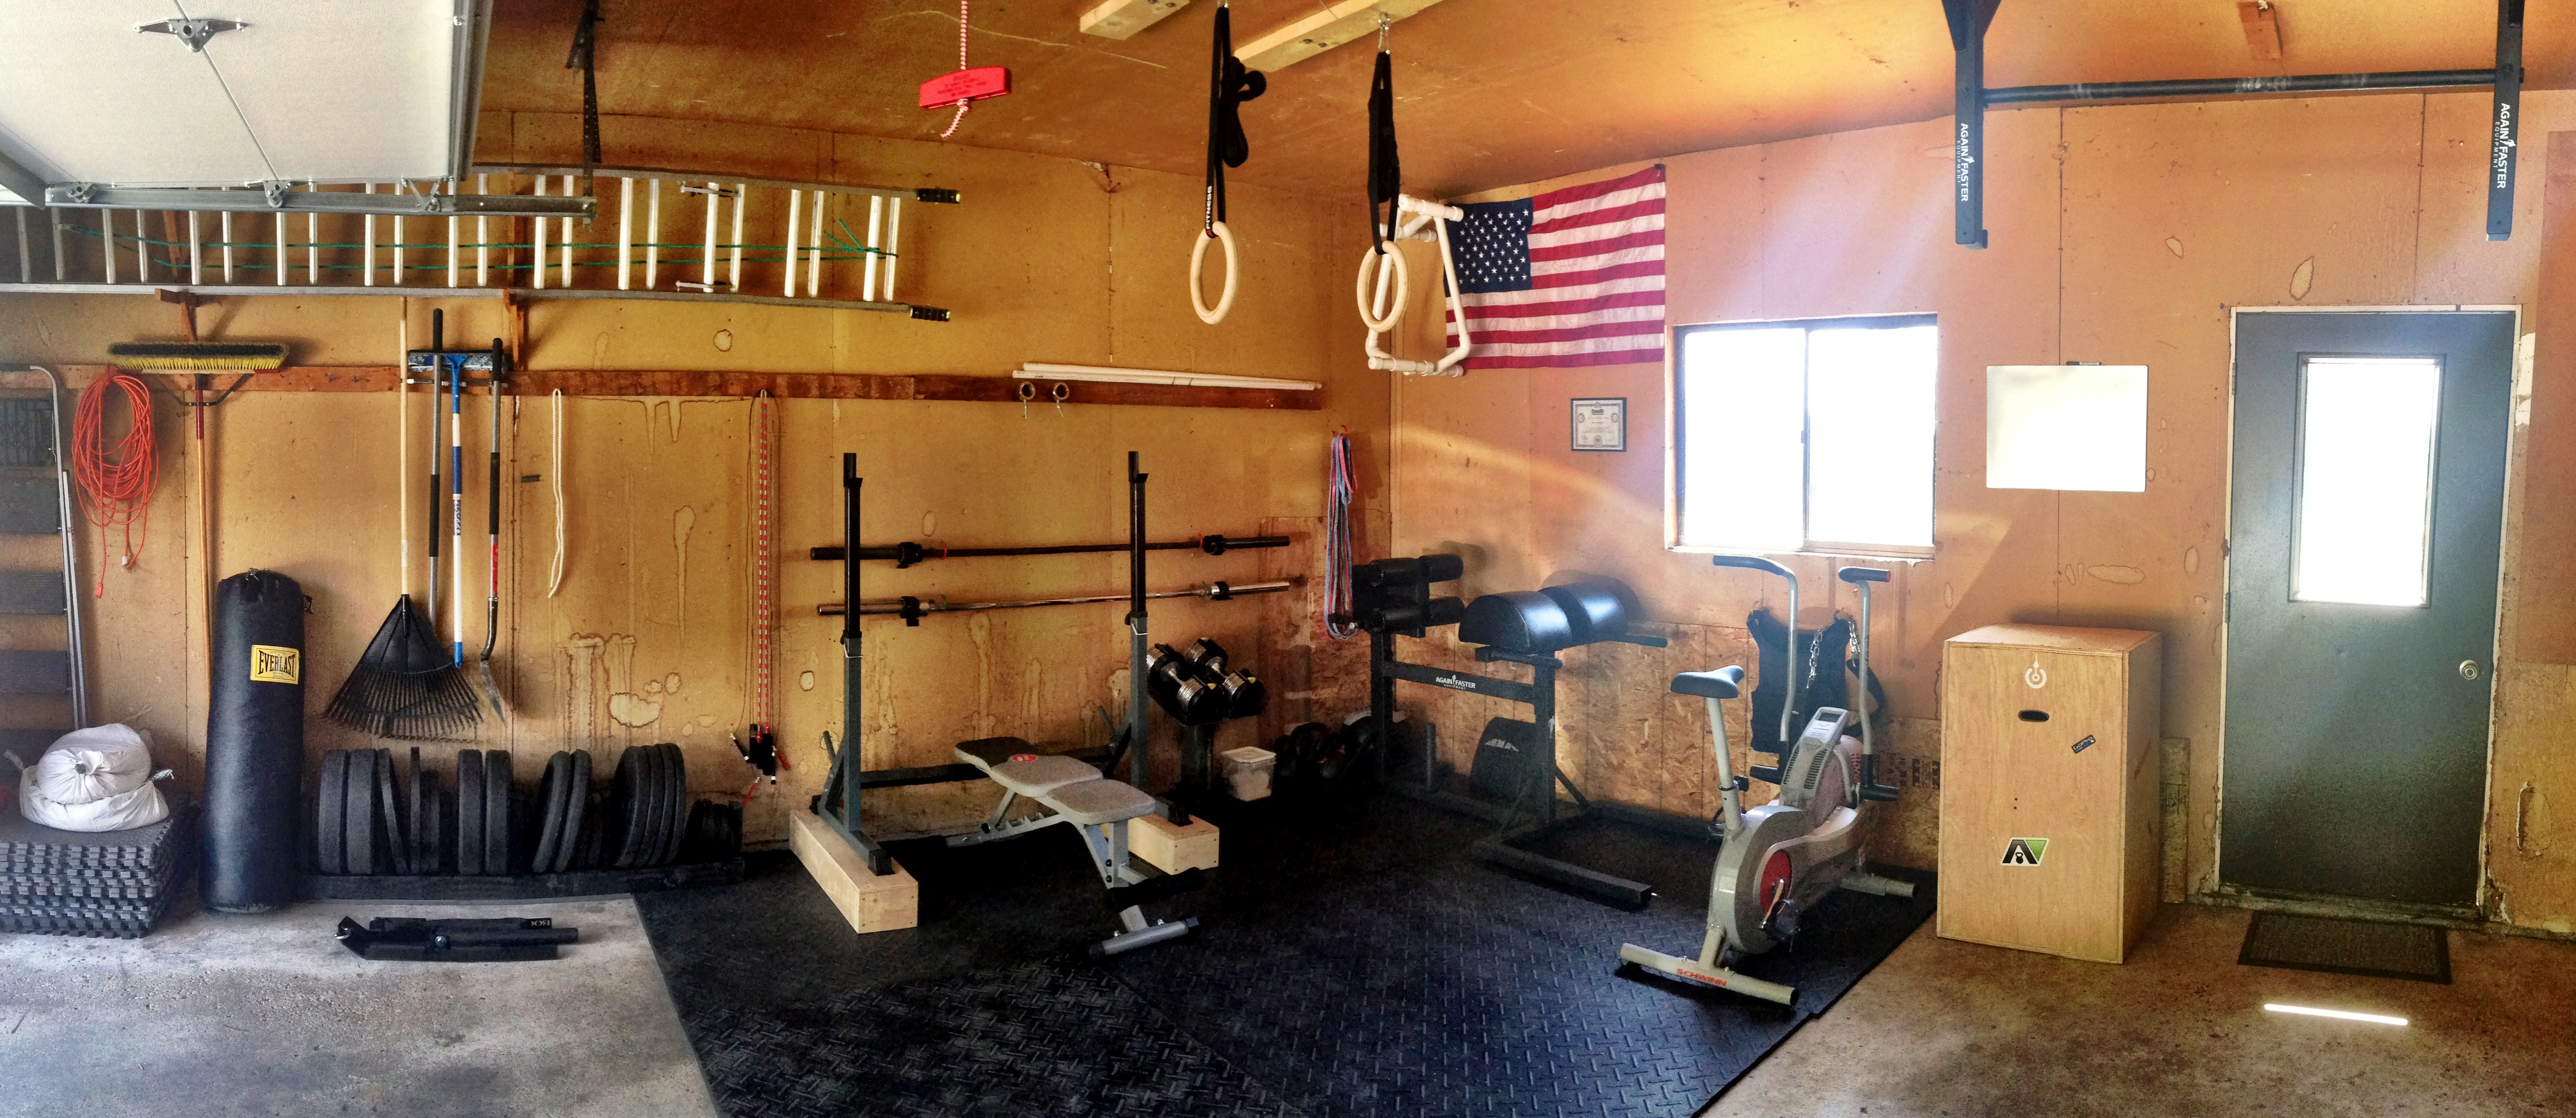 Crossfit home gym garage pictures and ideas on weric